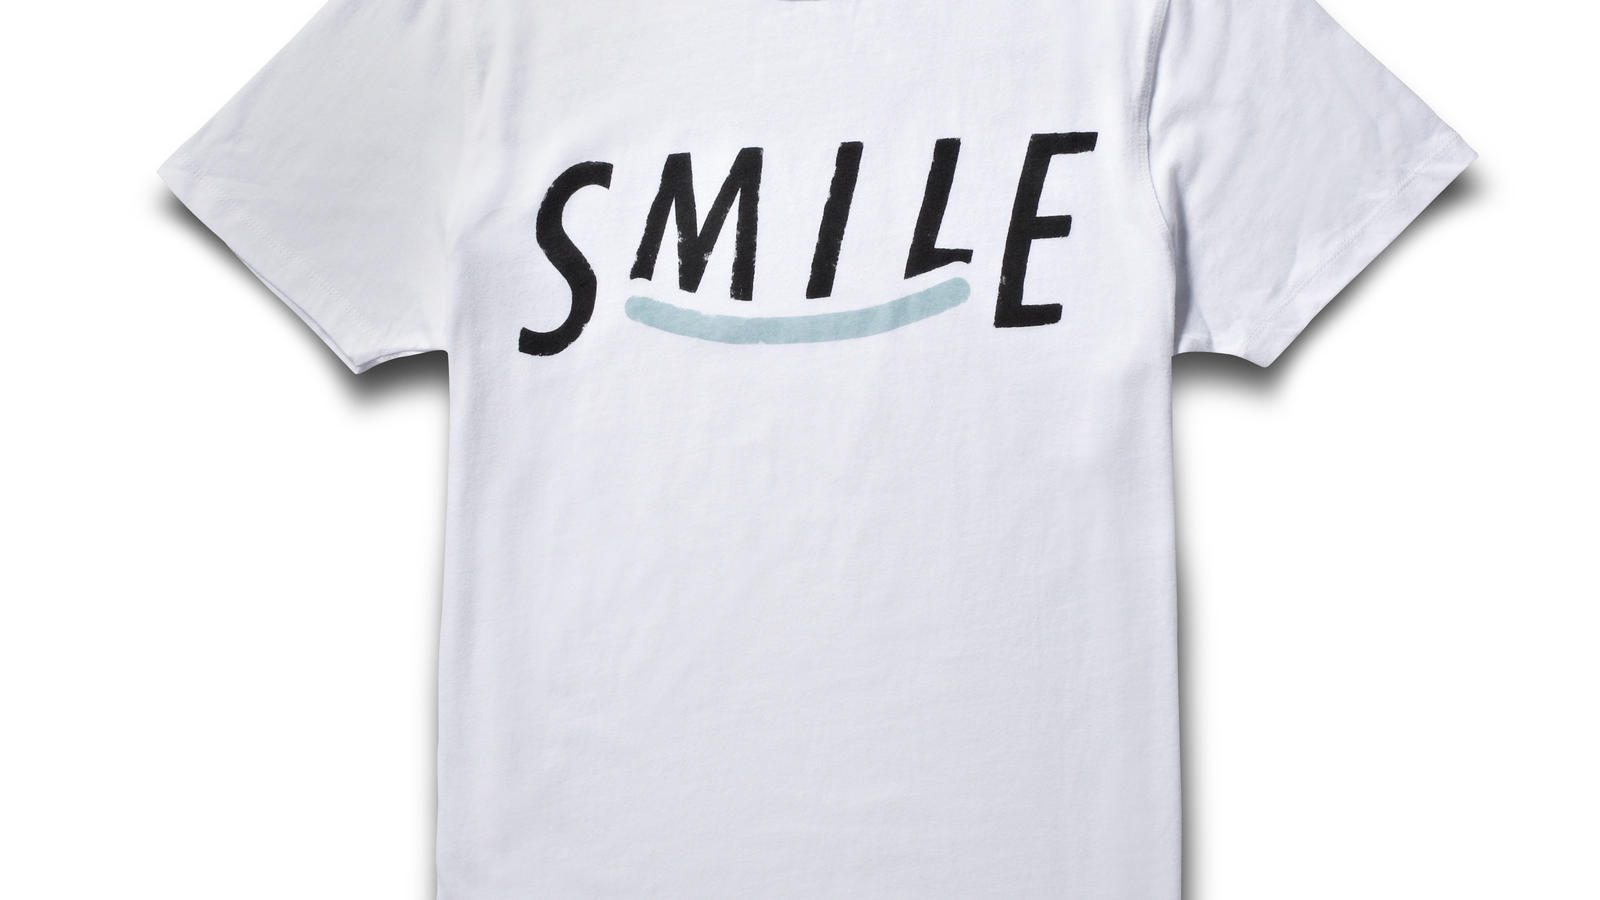 The Smile Tee Original